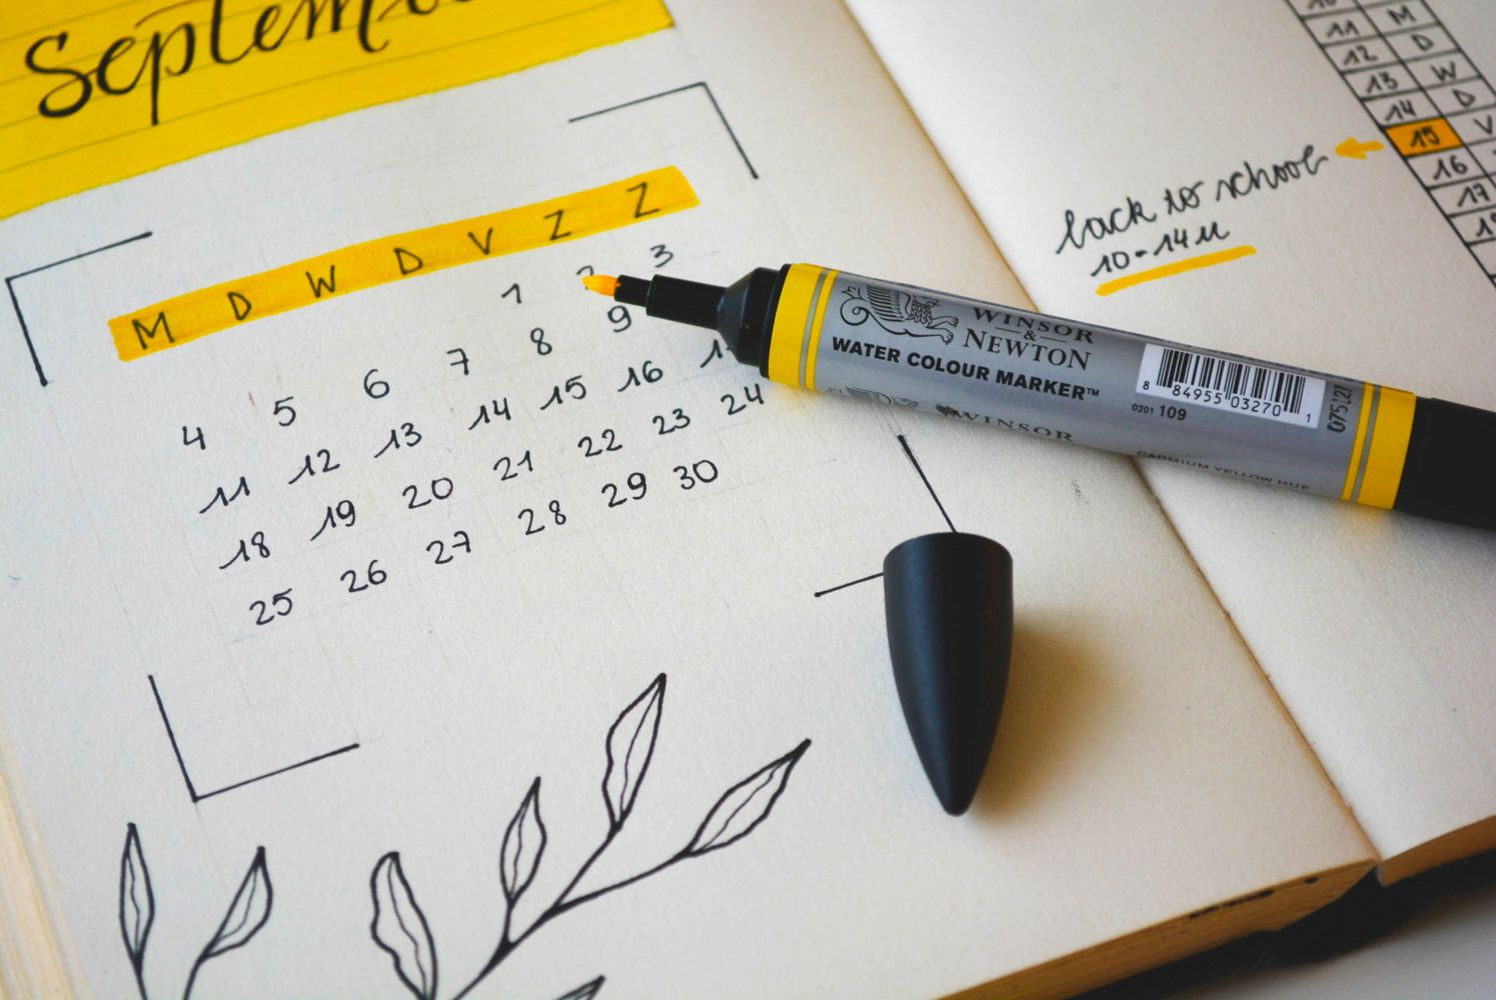 A marker and its cap set atop an open planner with a calendar on one page